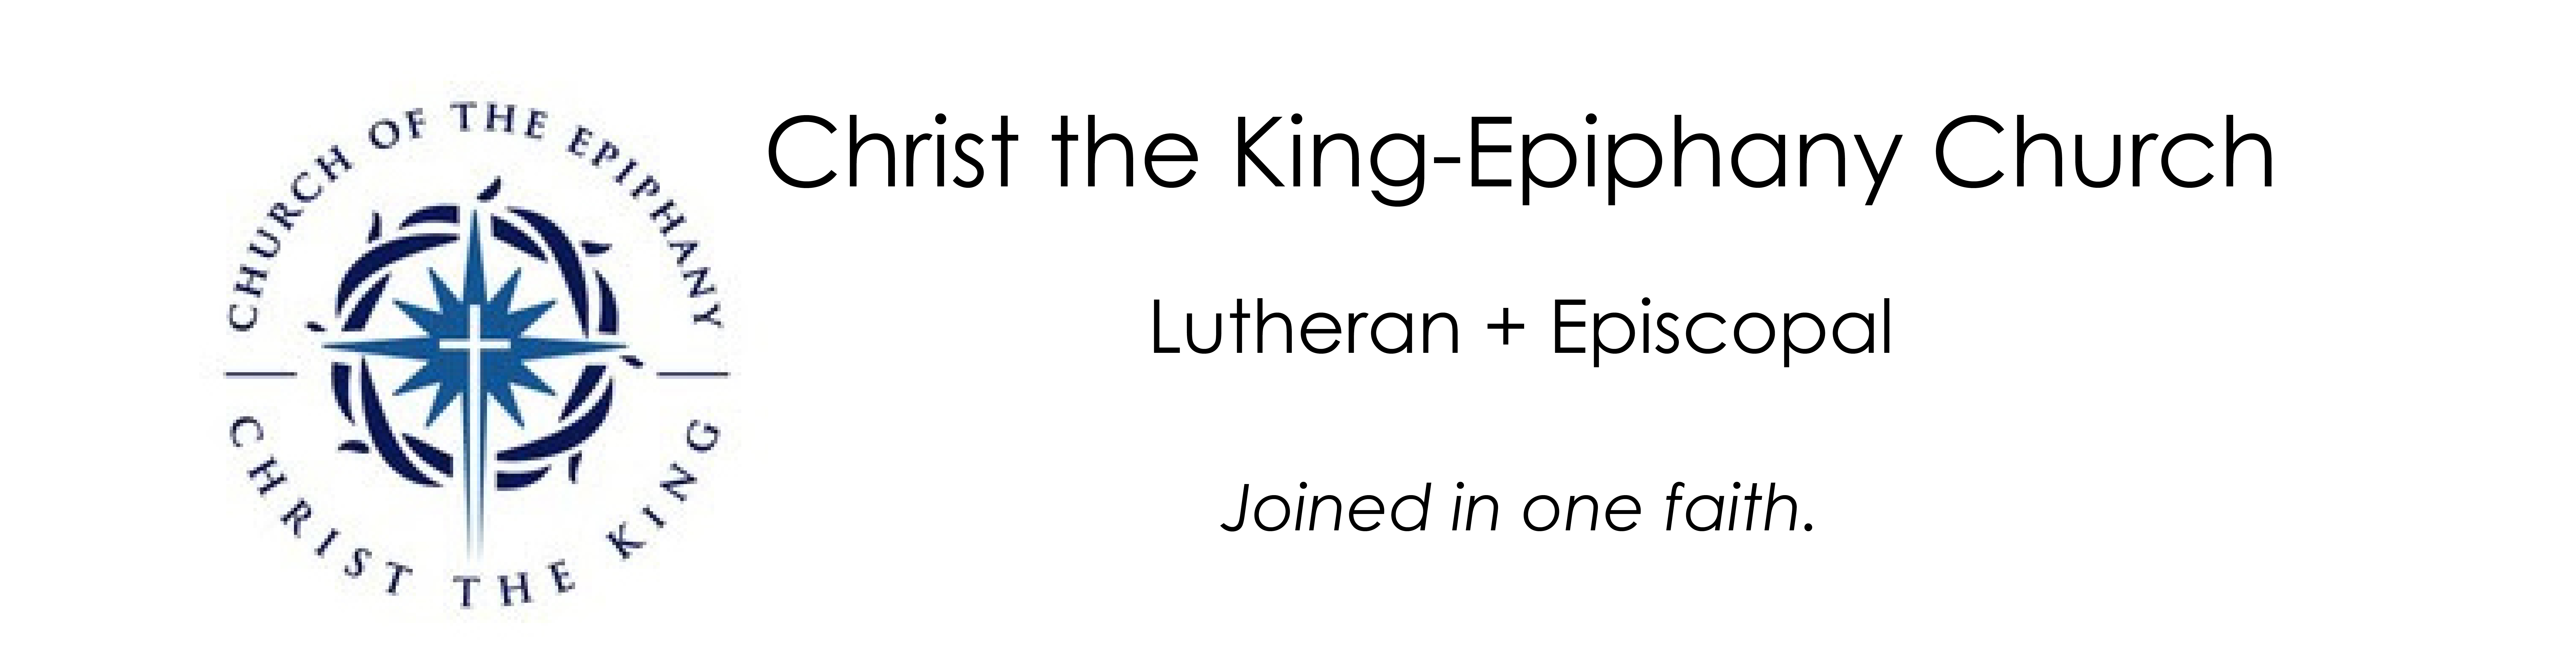 Christ the King-Epiphany Church logo